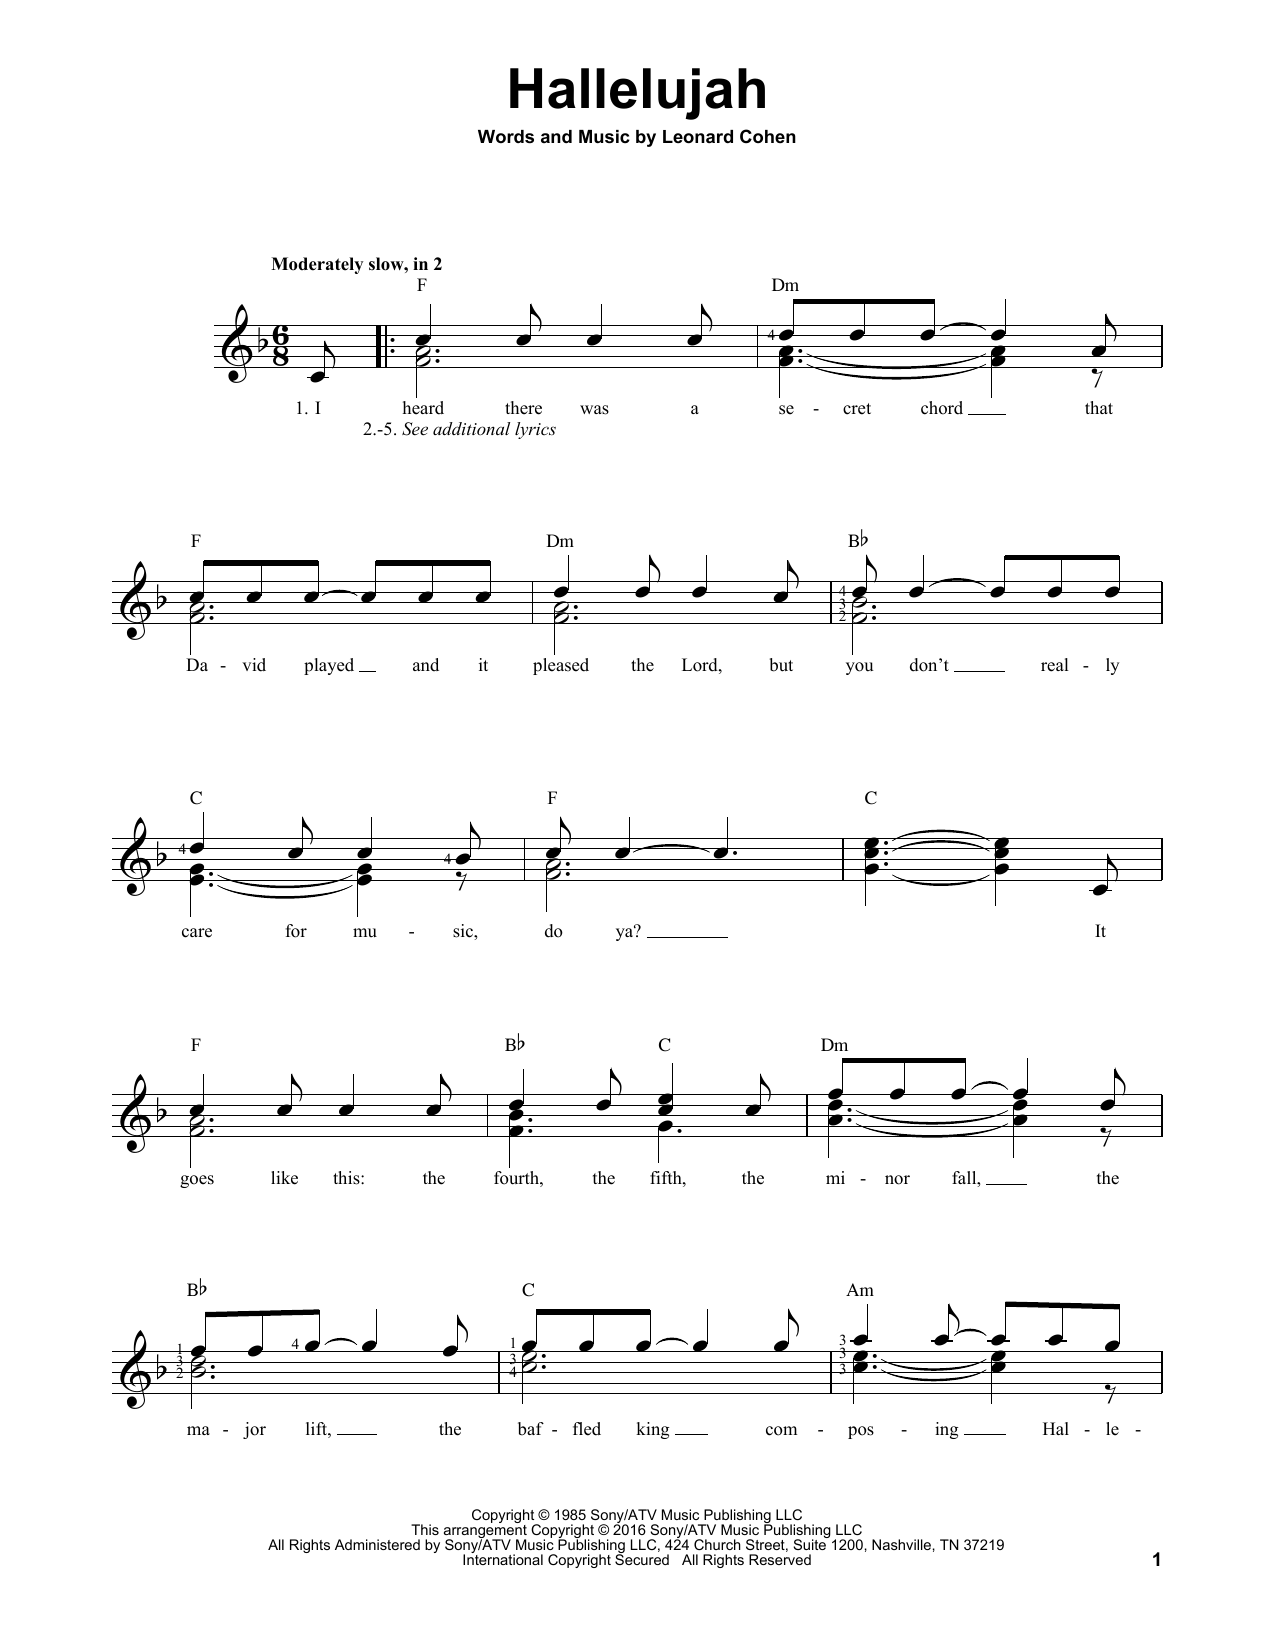 Hallelujah Guitar Chords Pictures